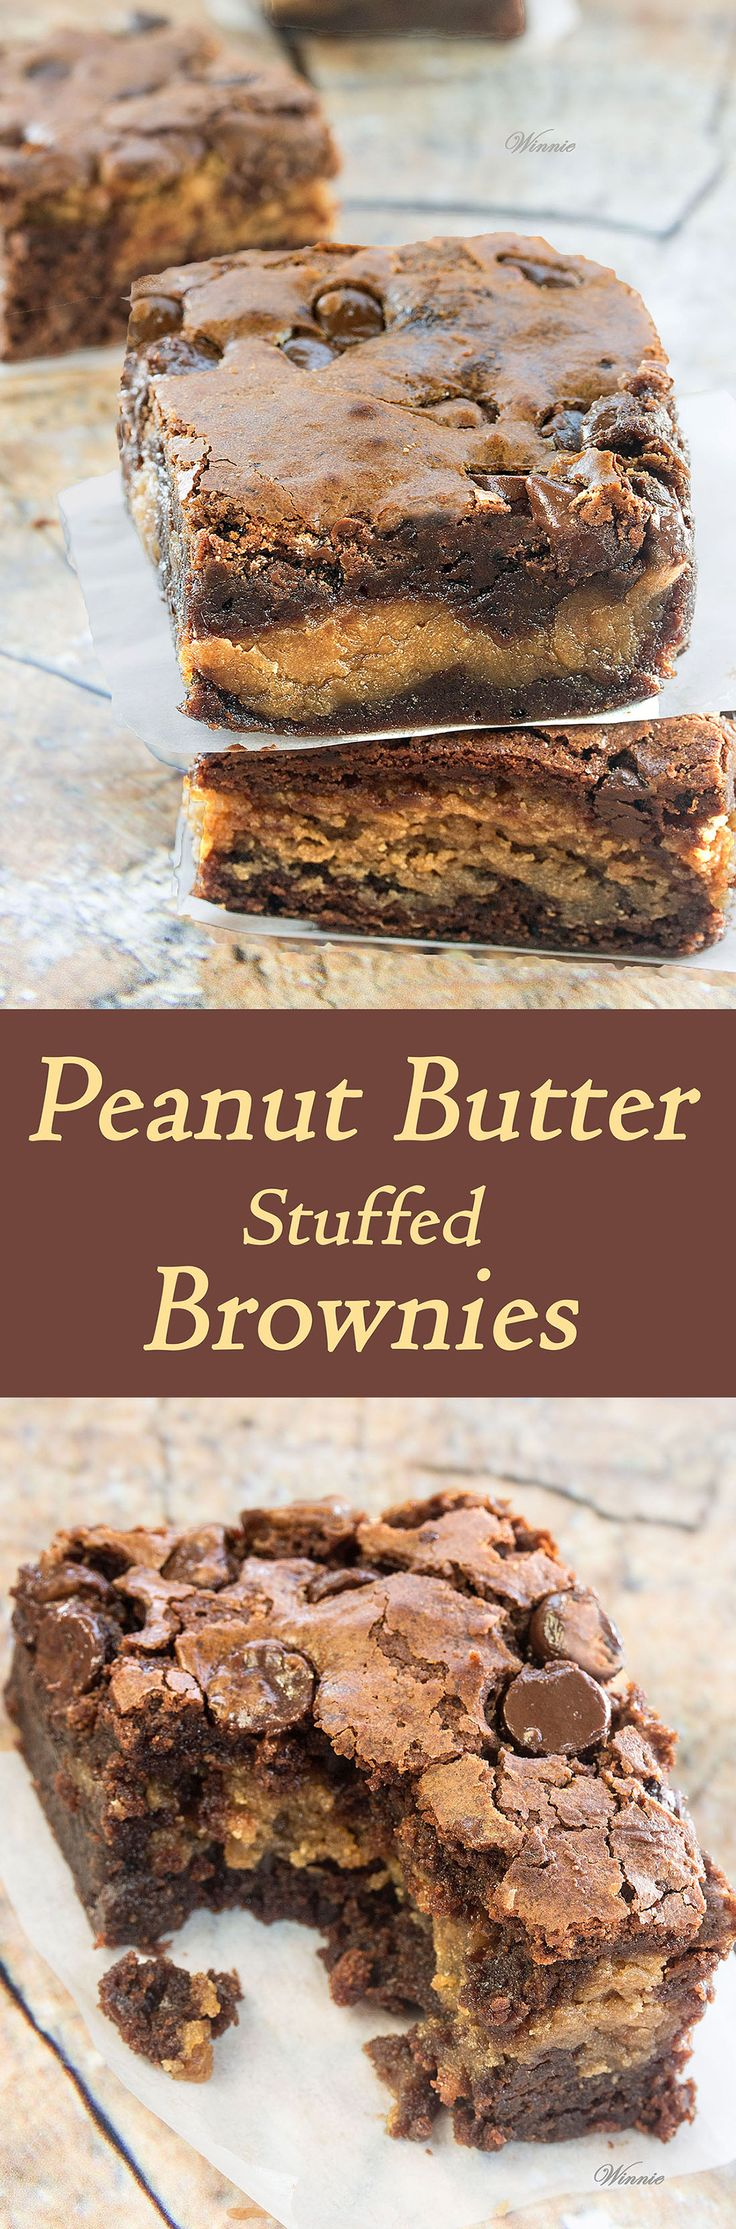 The most delicious treat - Peanut Butter Stuffed Brownies. . http://www.winnish.net/2015/07/7210/ #TheBeautyAddict